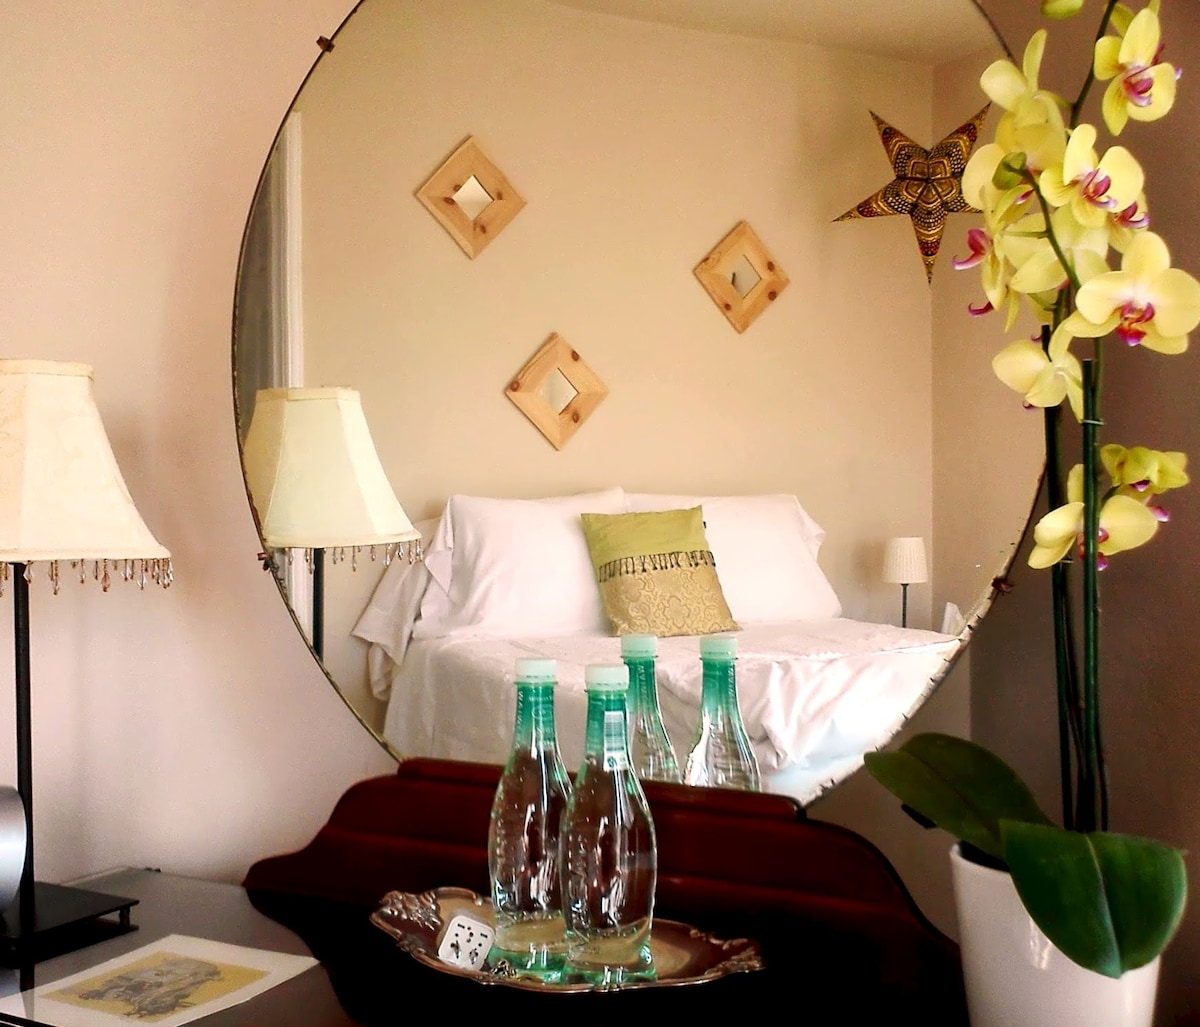 ...another view of the guest room...decor throughout the home has been updated since photos...